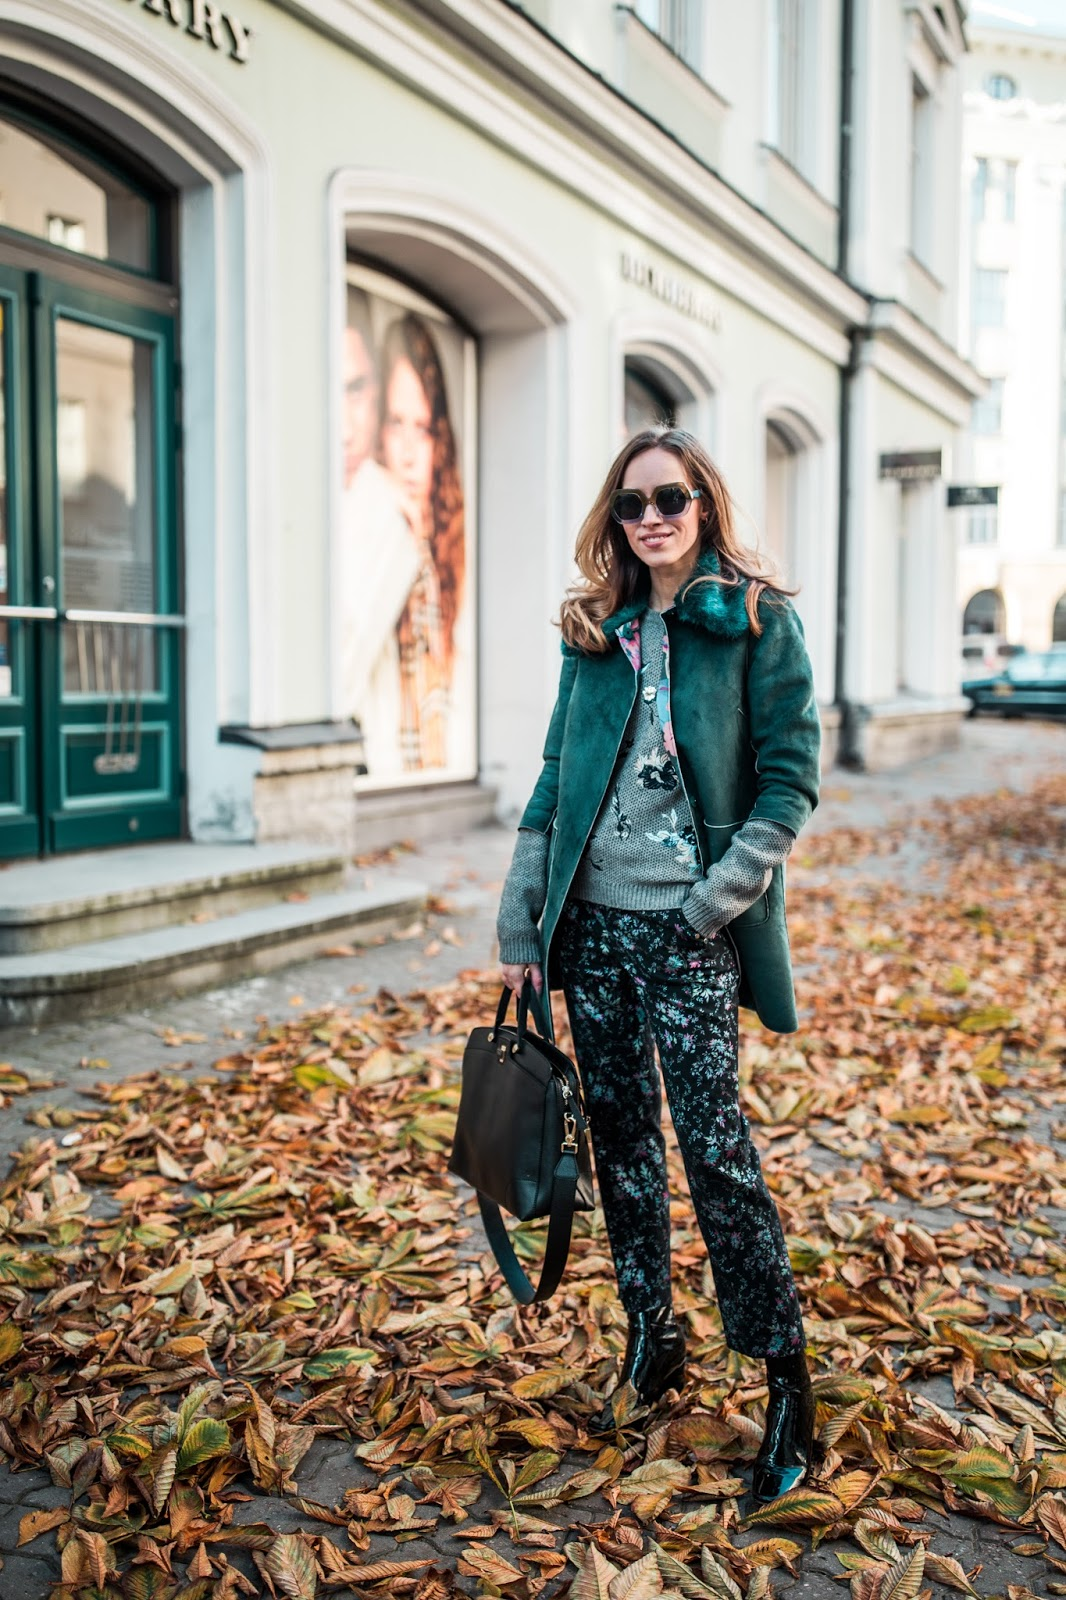 floral print trousers turquoise jacket fall outfit